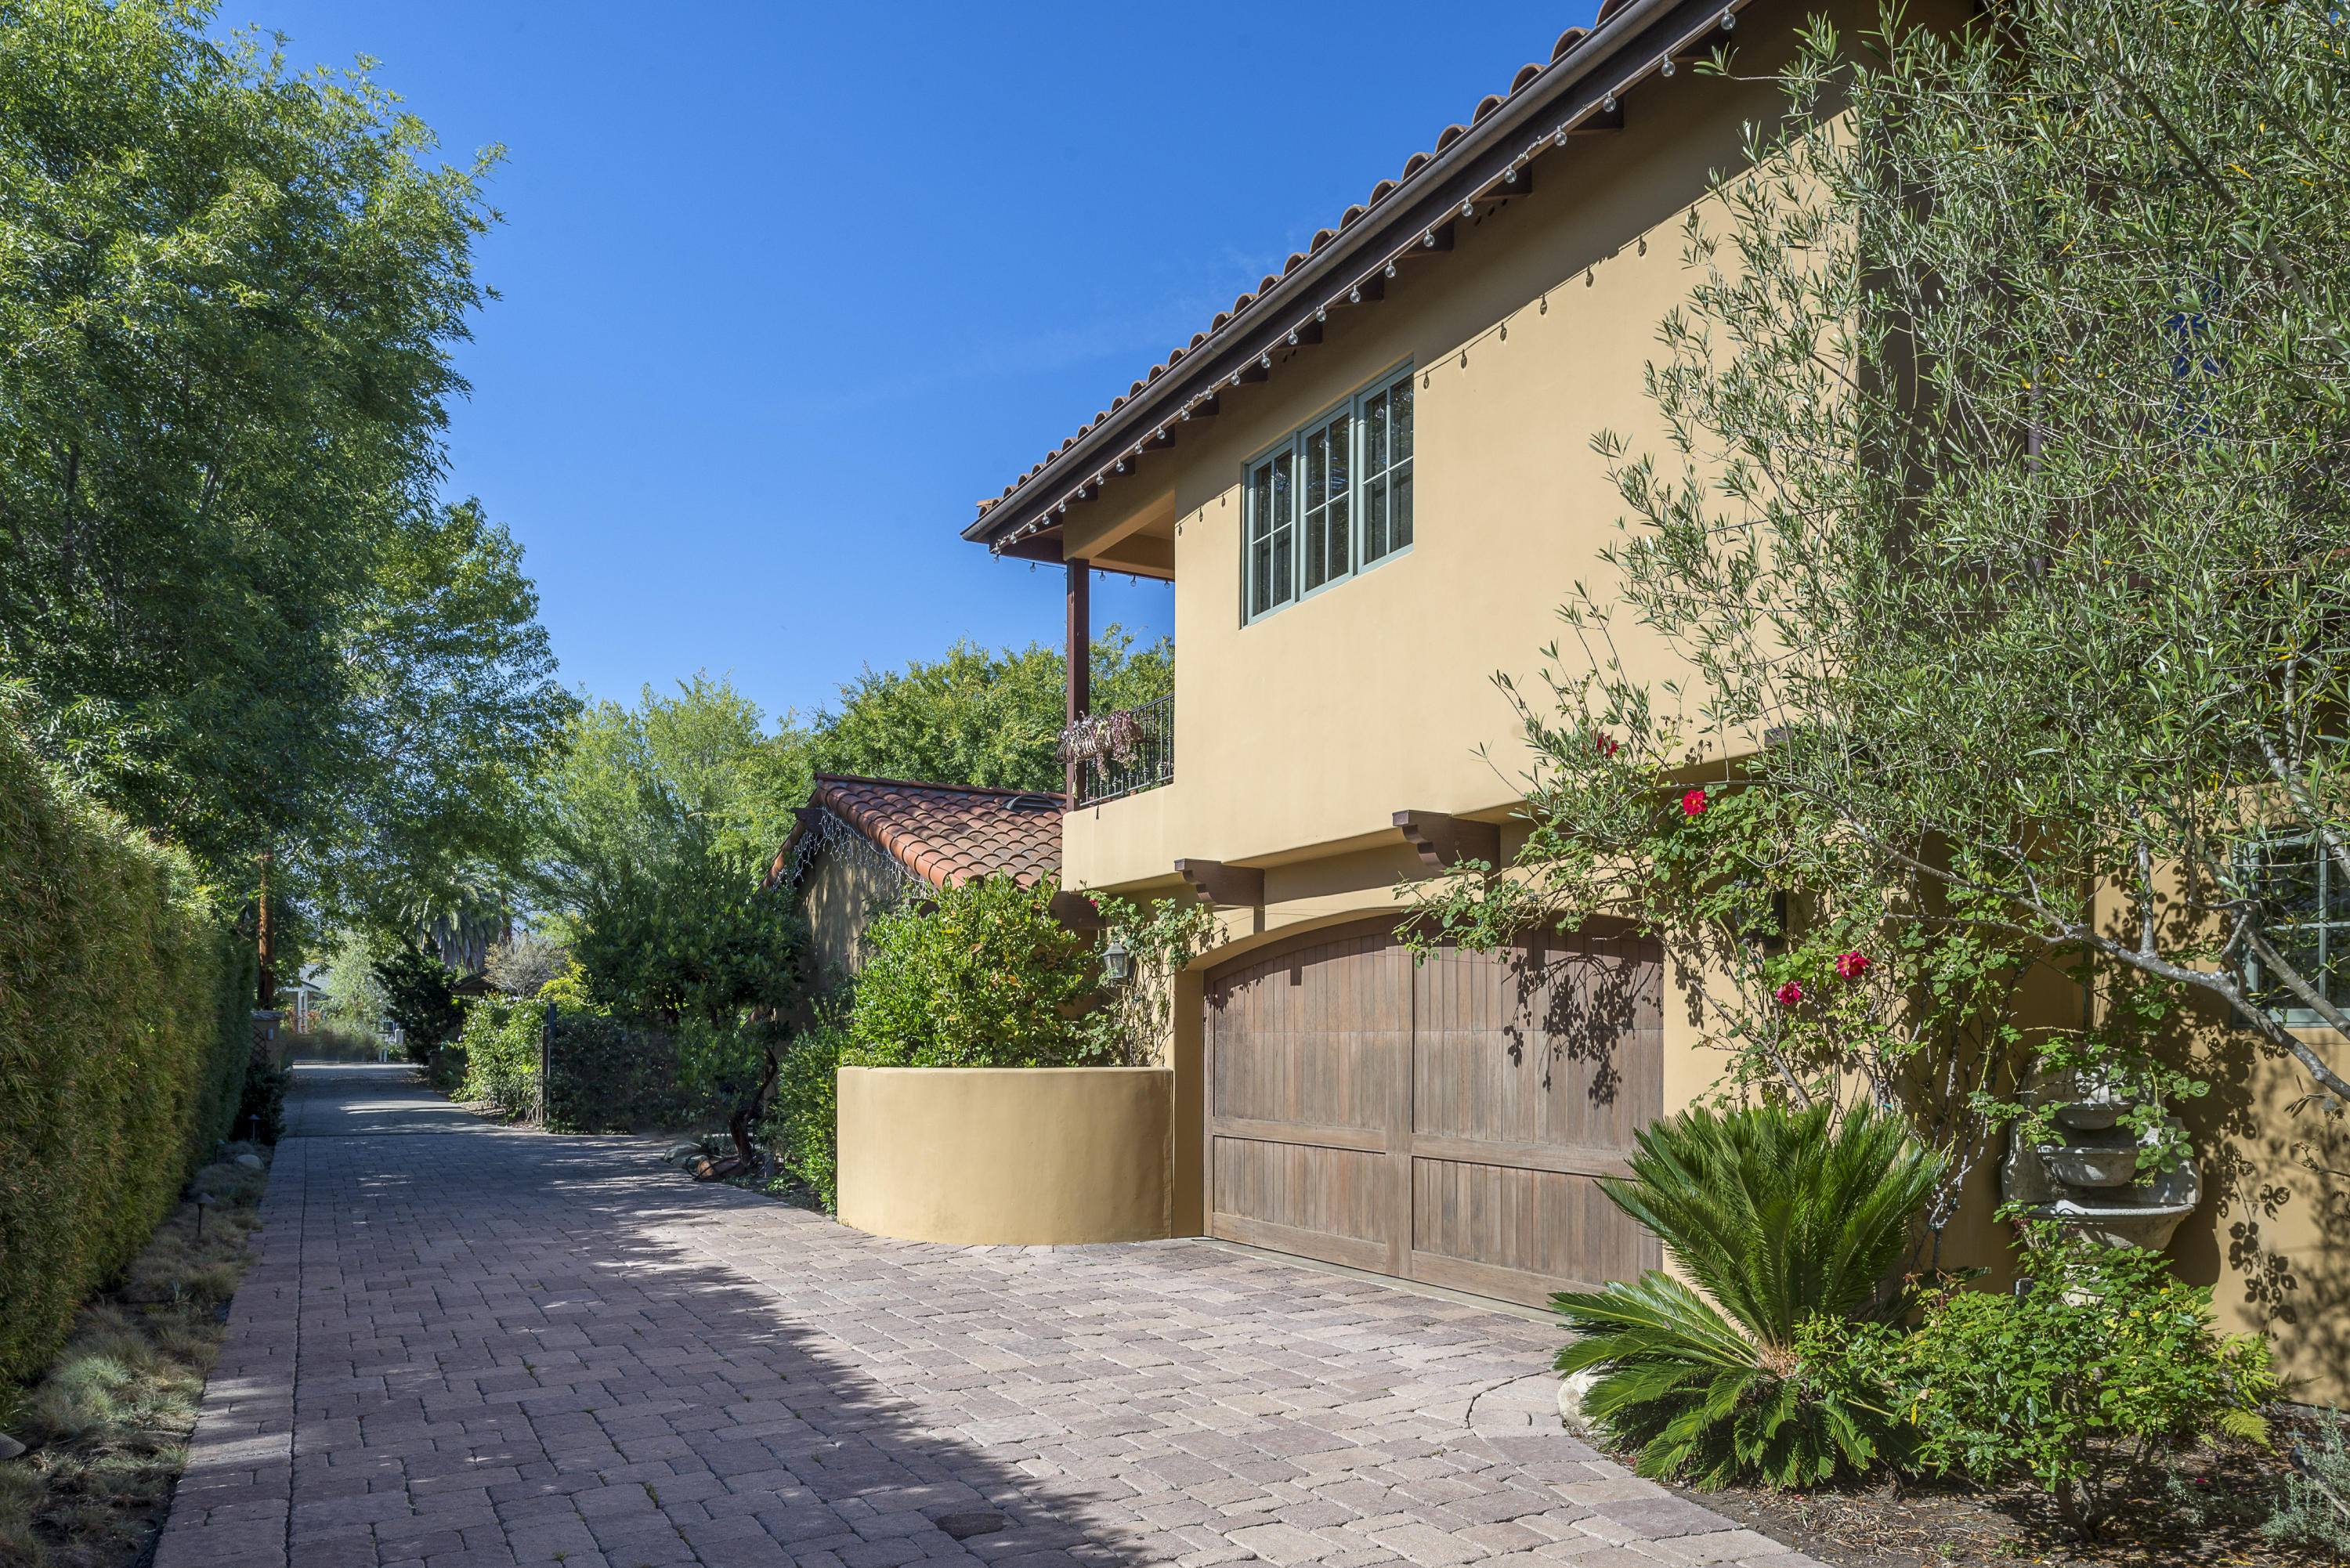 Property photo for 4357 Cuna Dr Santa Barbara, California 93110 - 15-2155